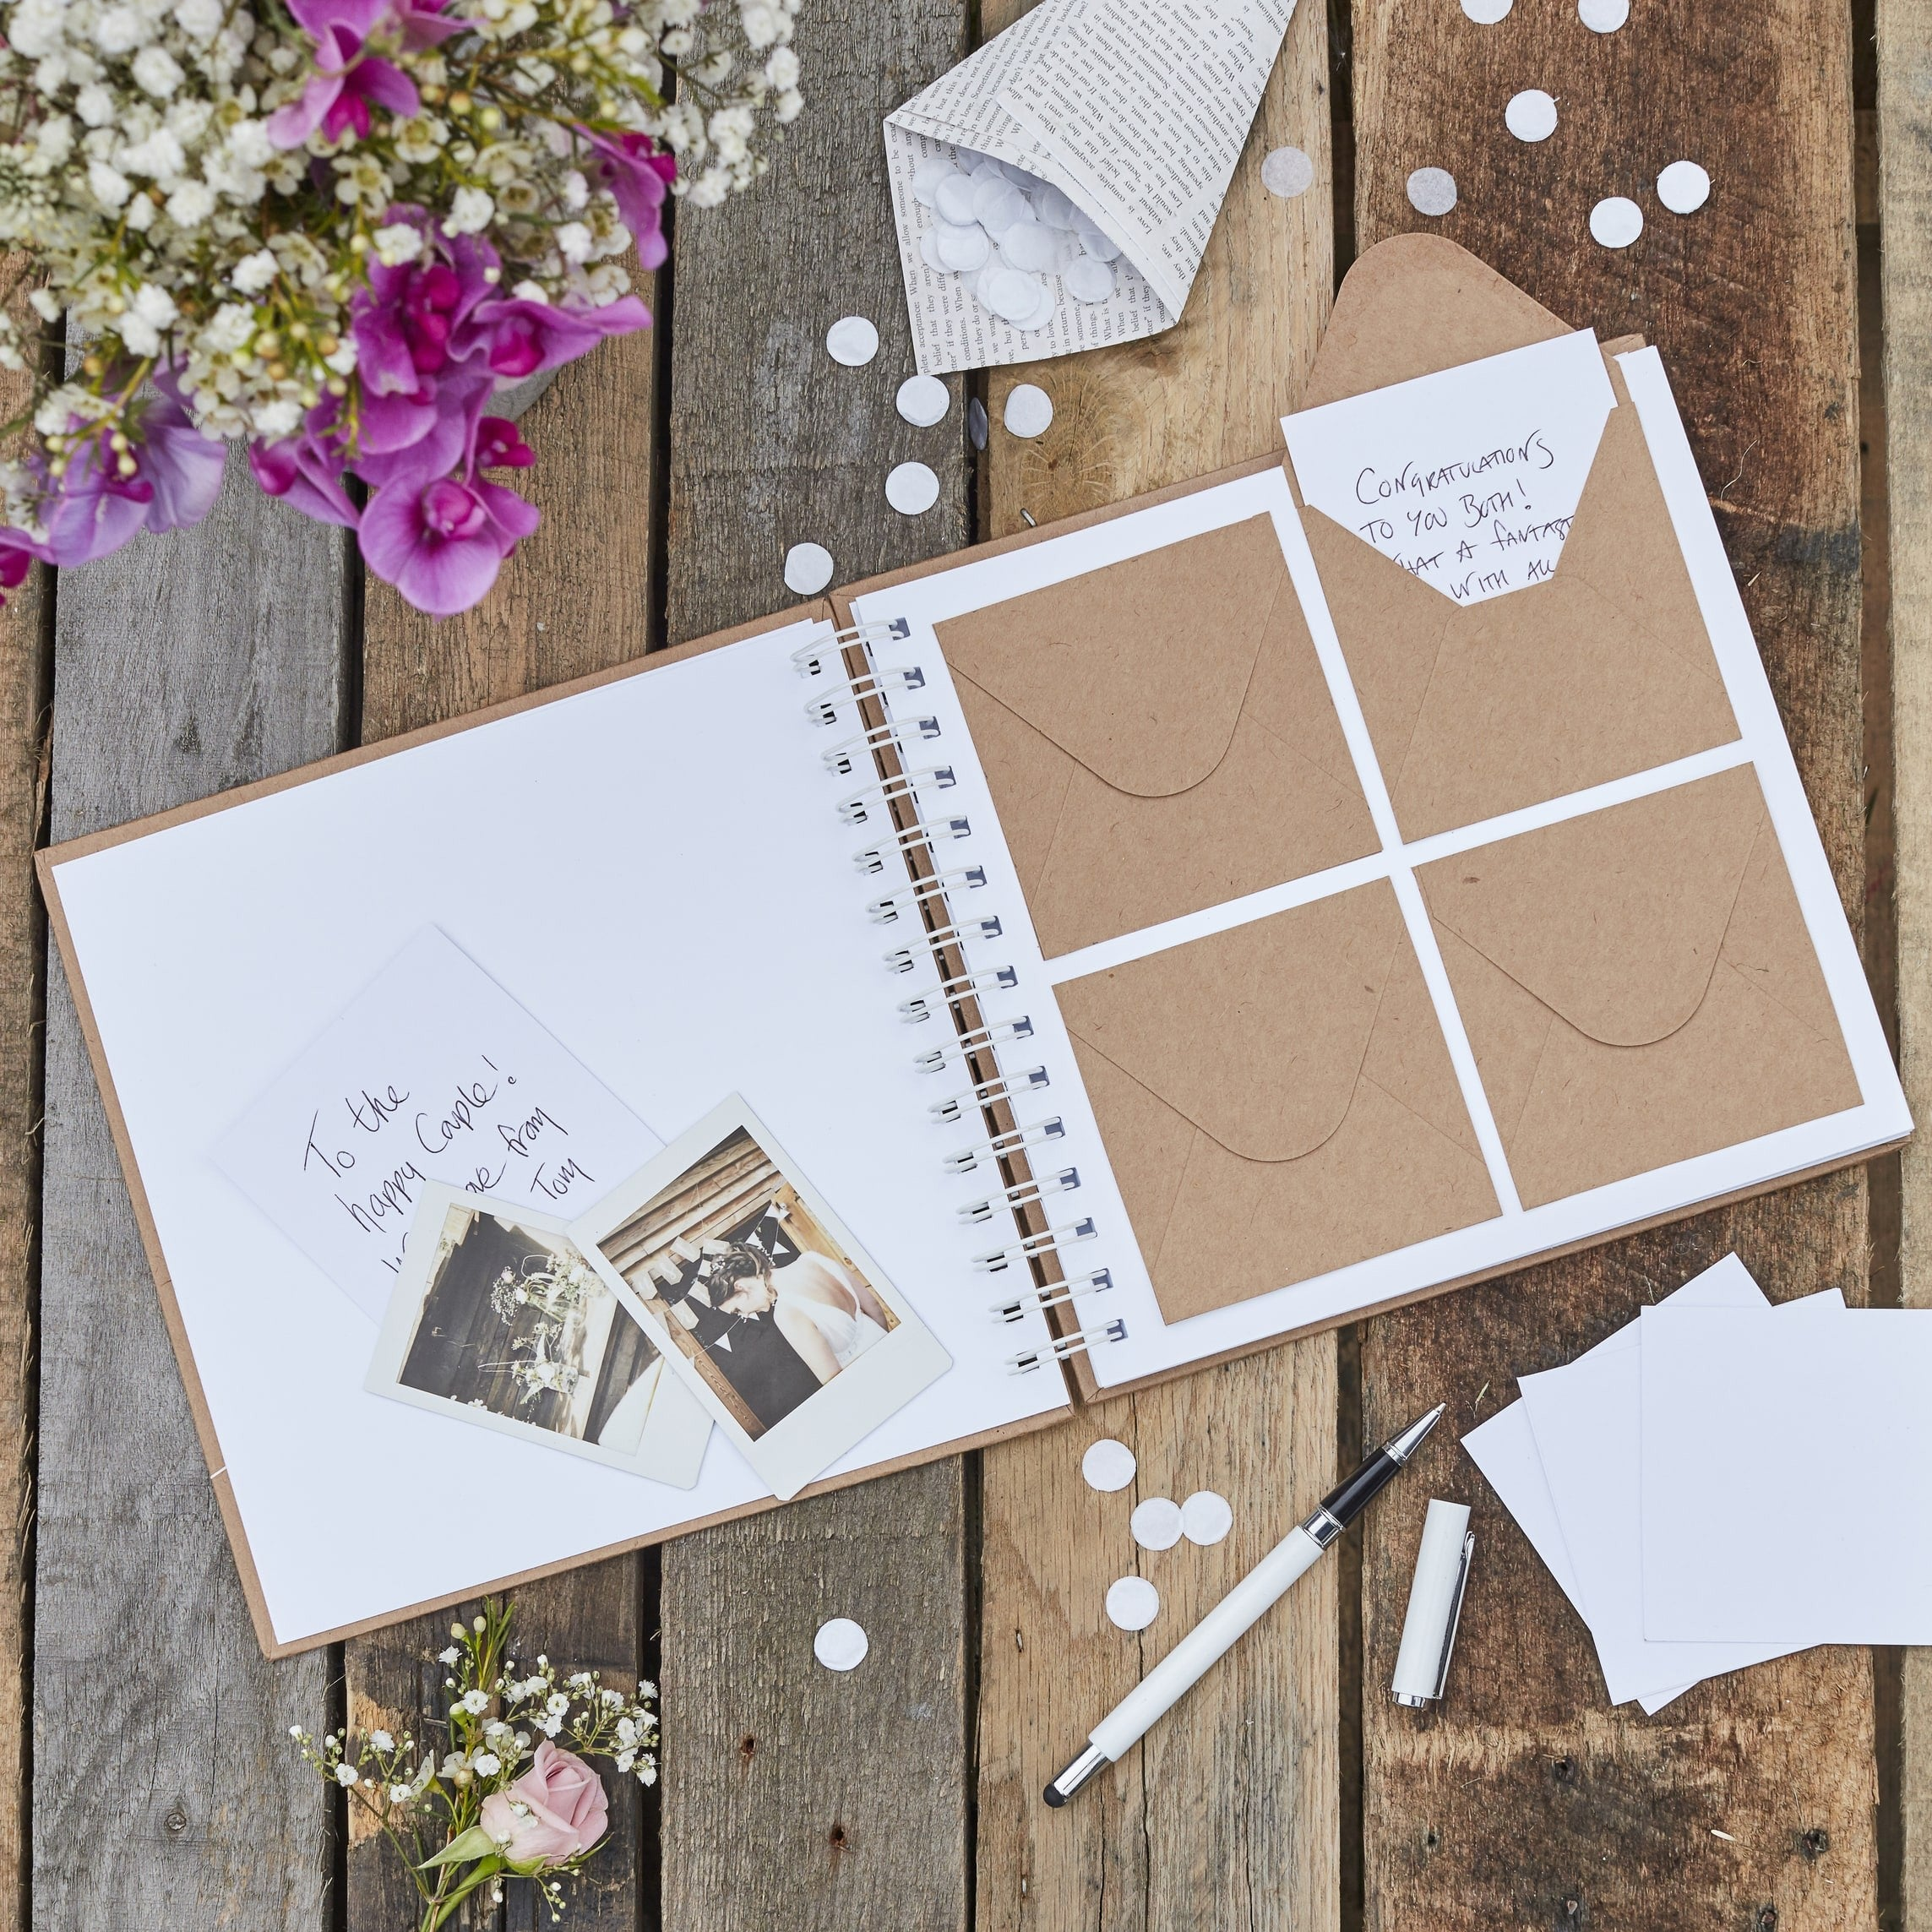 Wedding Photo Books Uk: Best Day Ever Wedding Guest Book With Envelopes